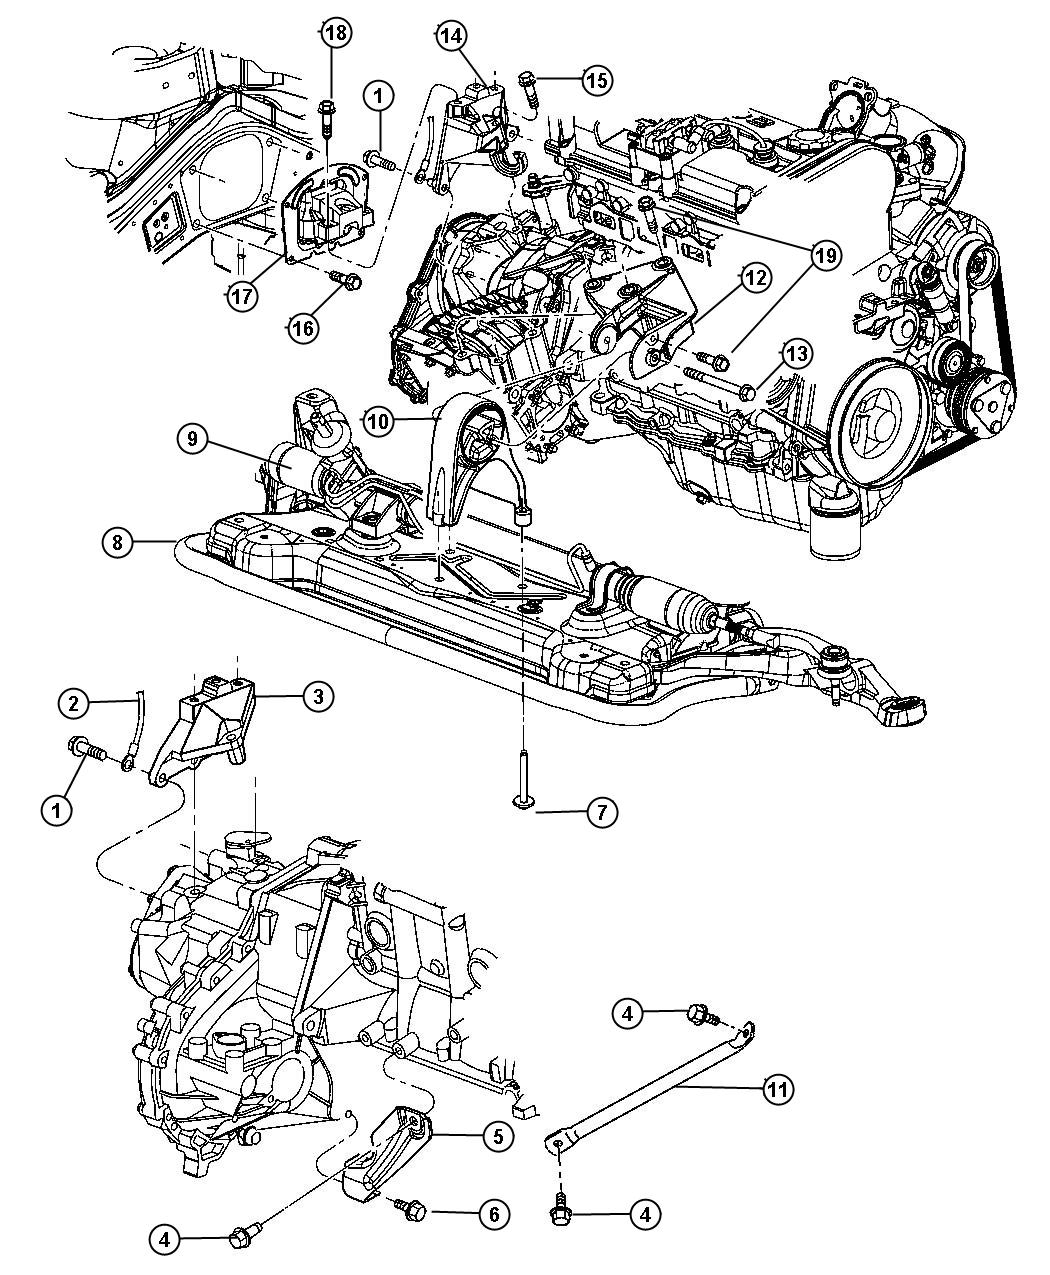 dodge neon wiring diagram stereo dodge discover your wiring dodge stratus transmission wiring diagram